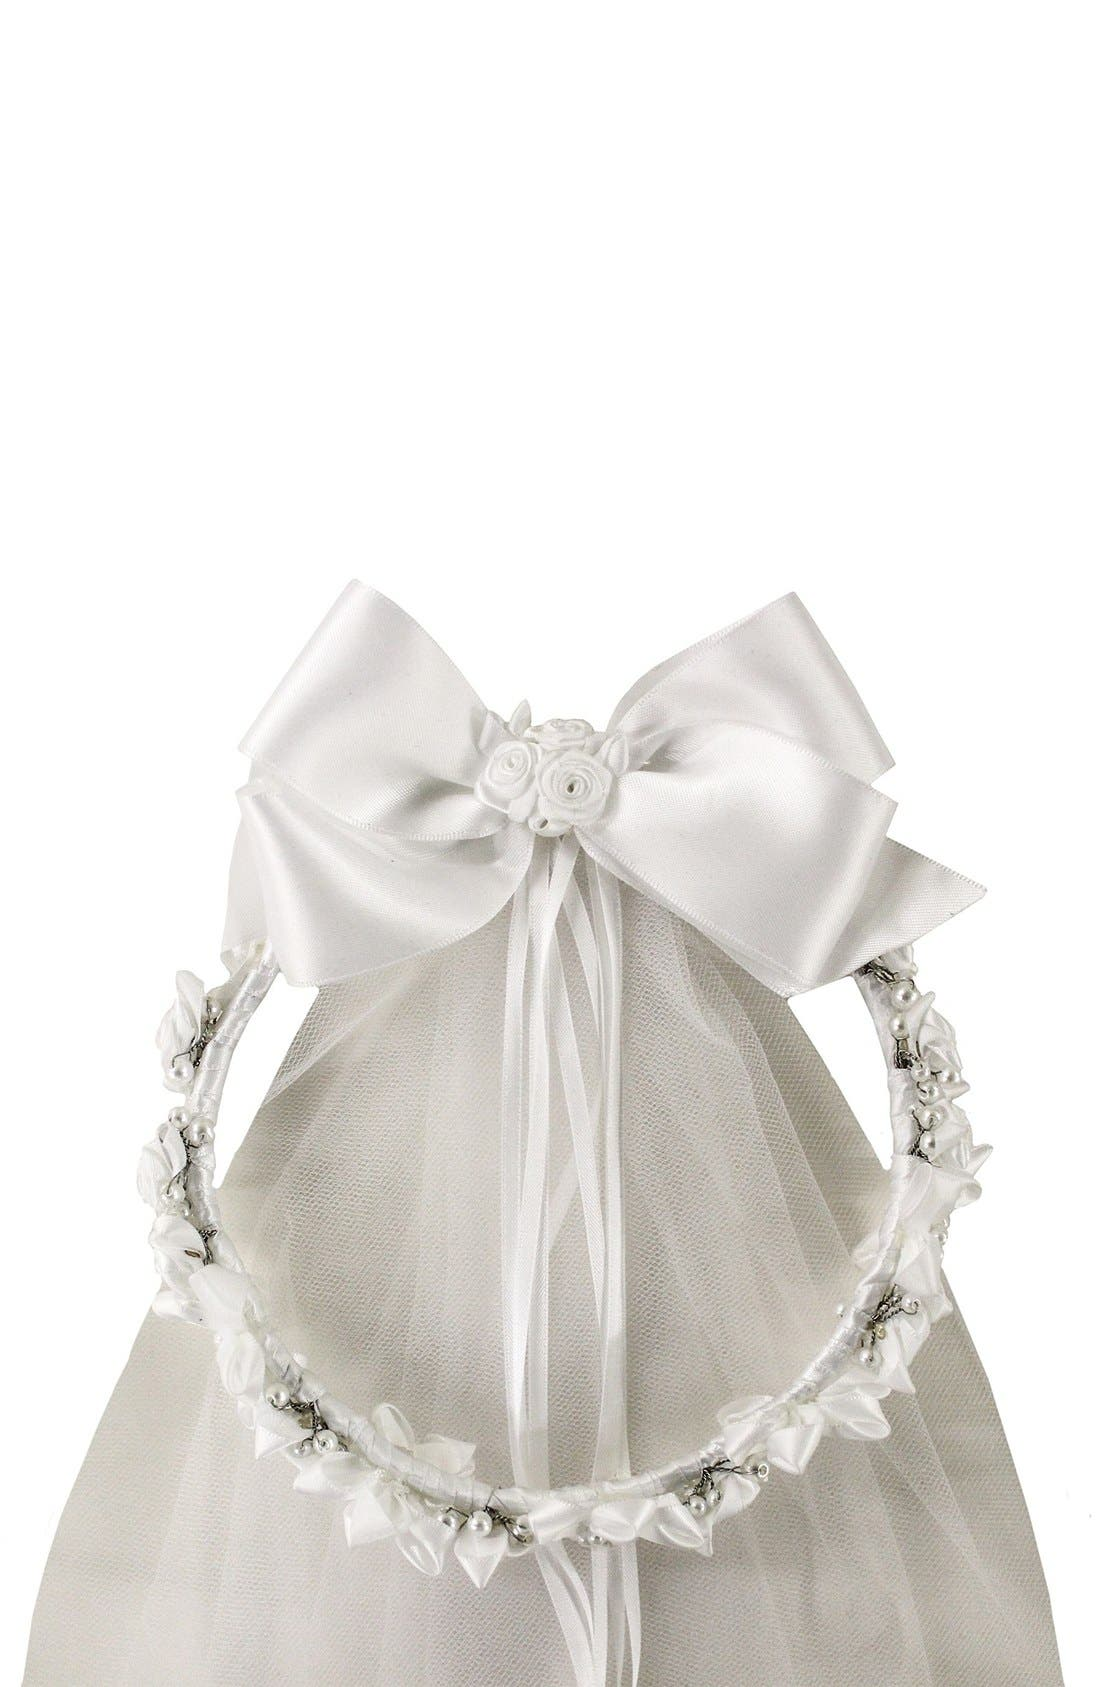 Main Image - Sorbet Communion Wreath with Removable Veil (Girls)